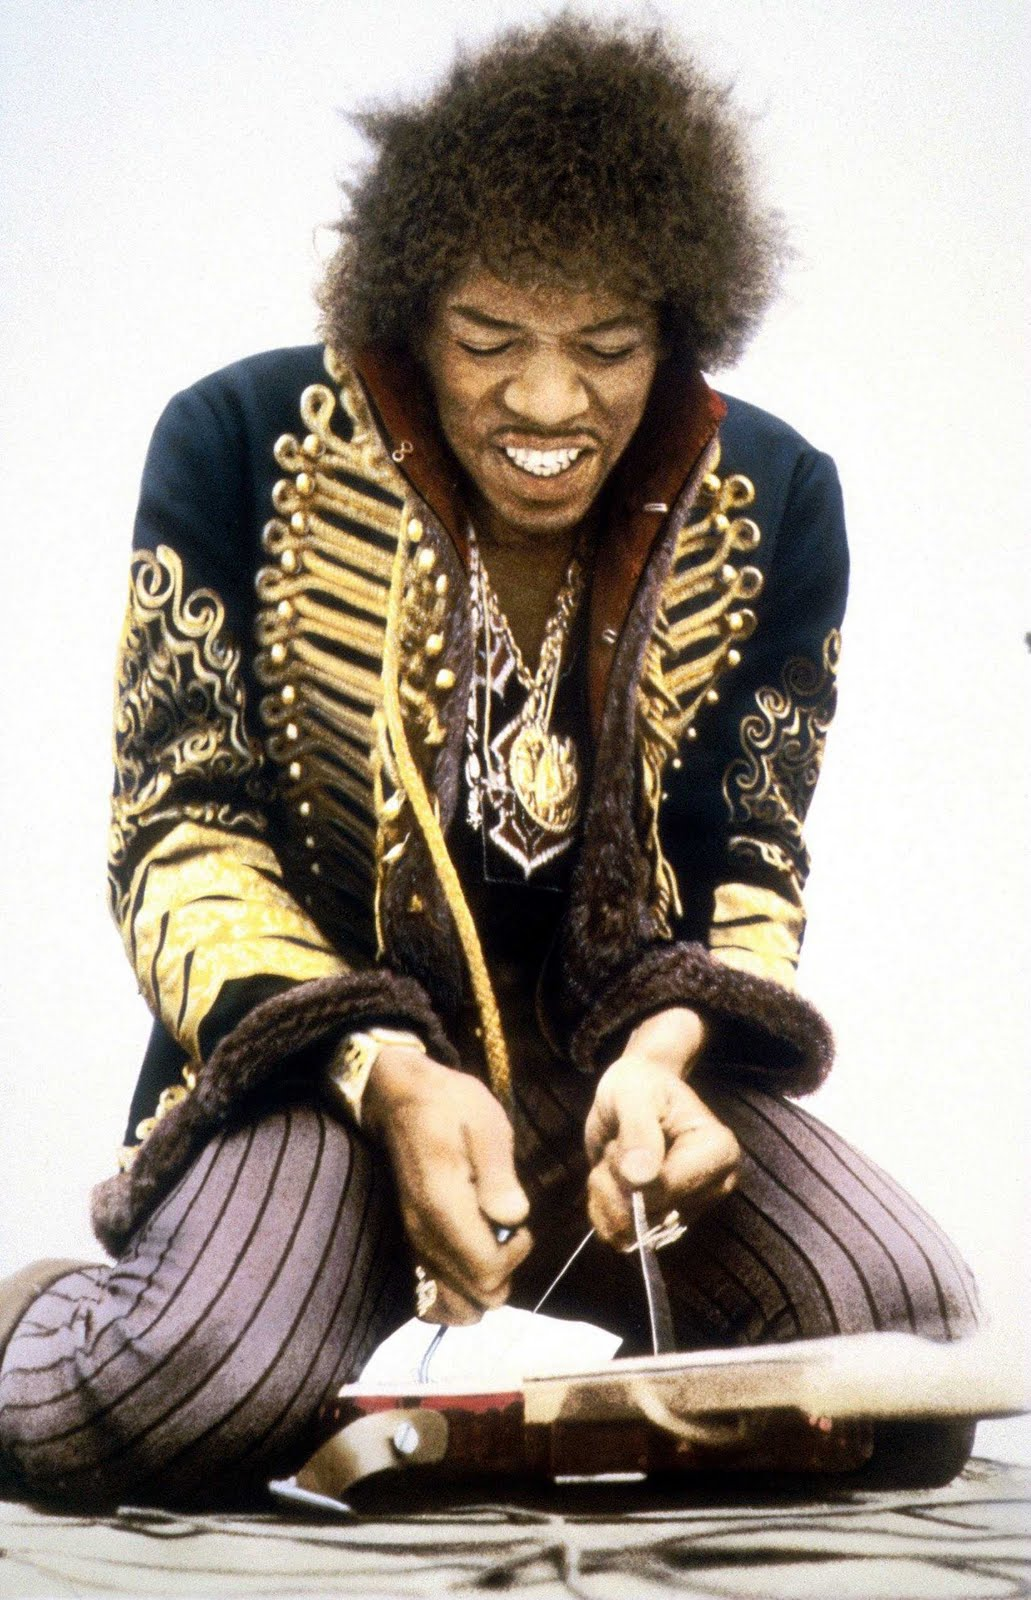 Jimi Hendrix Royal Hussars Military Jacket